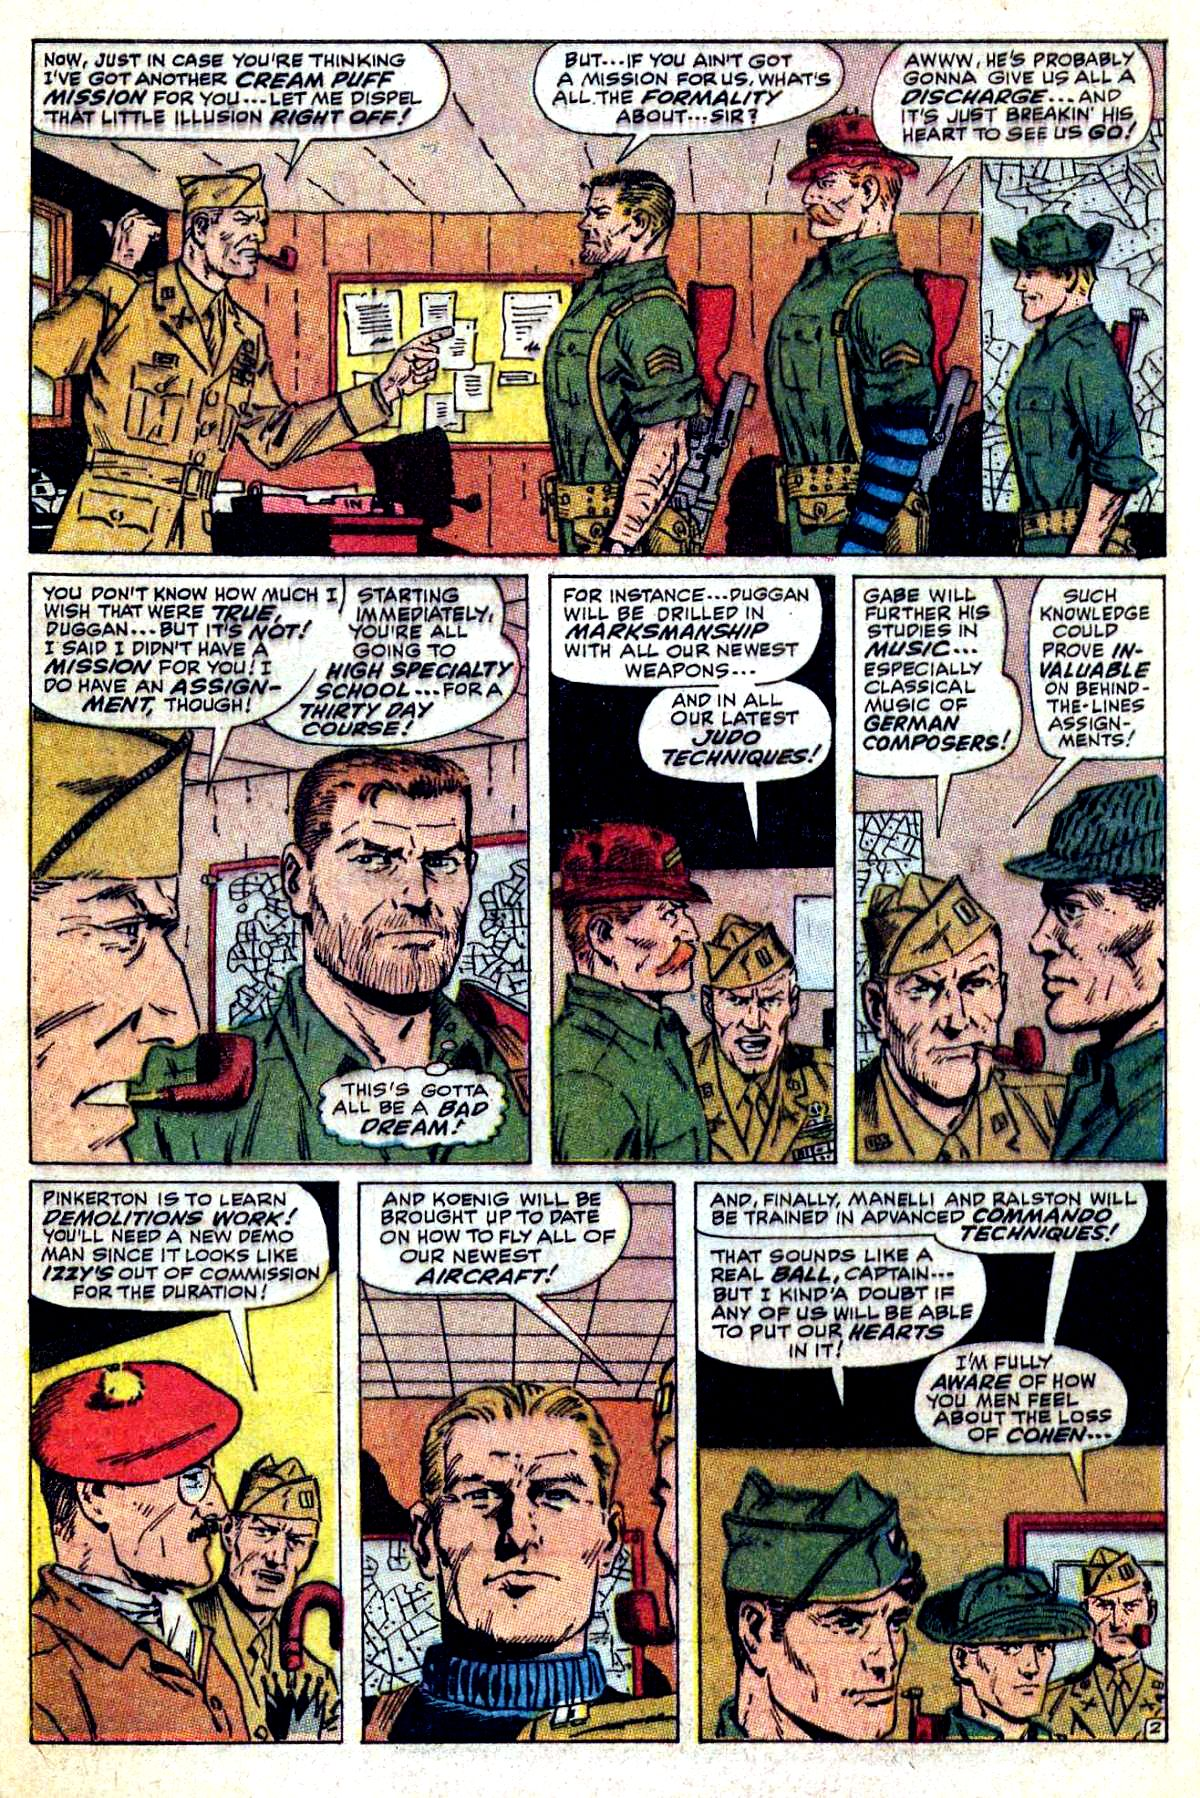 Read online Sgt. Fury comic -  Issue #54 - 4